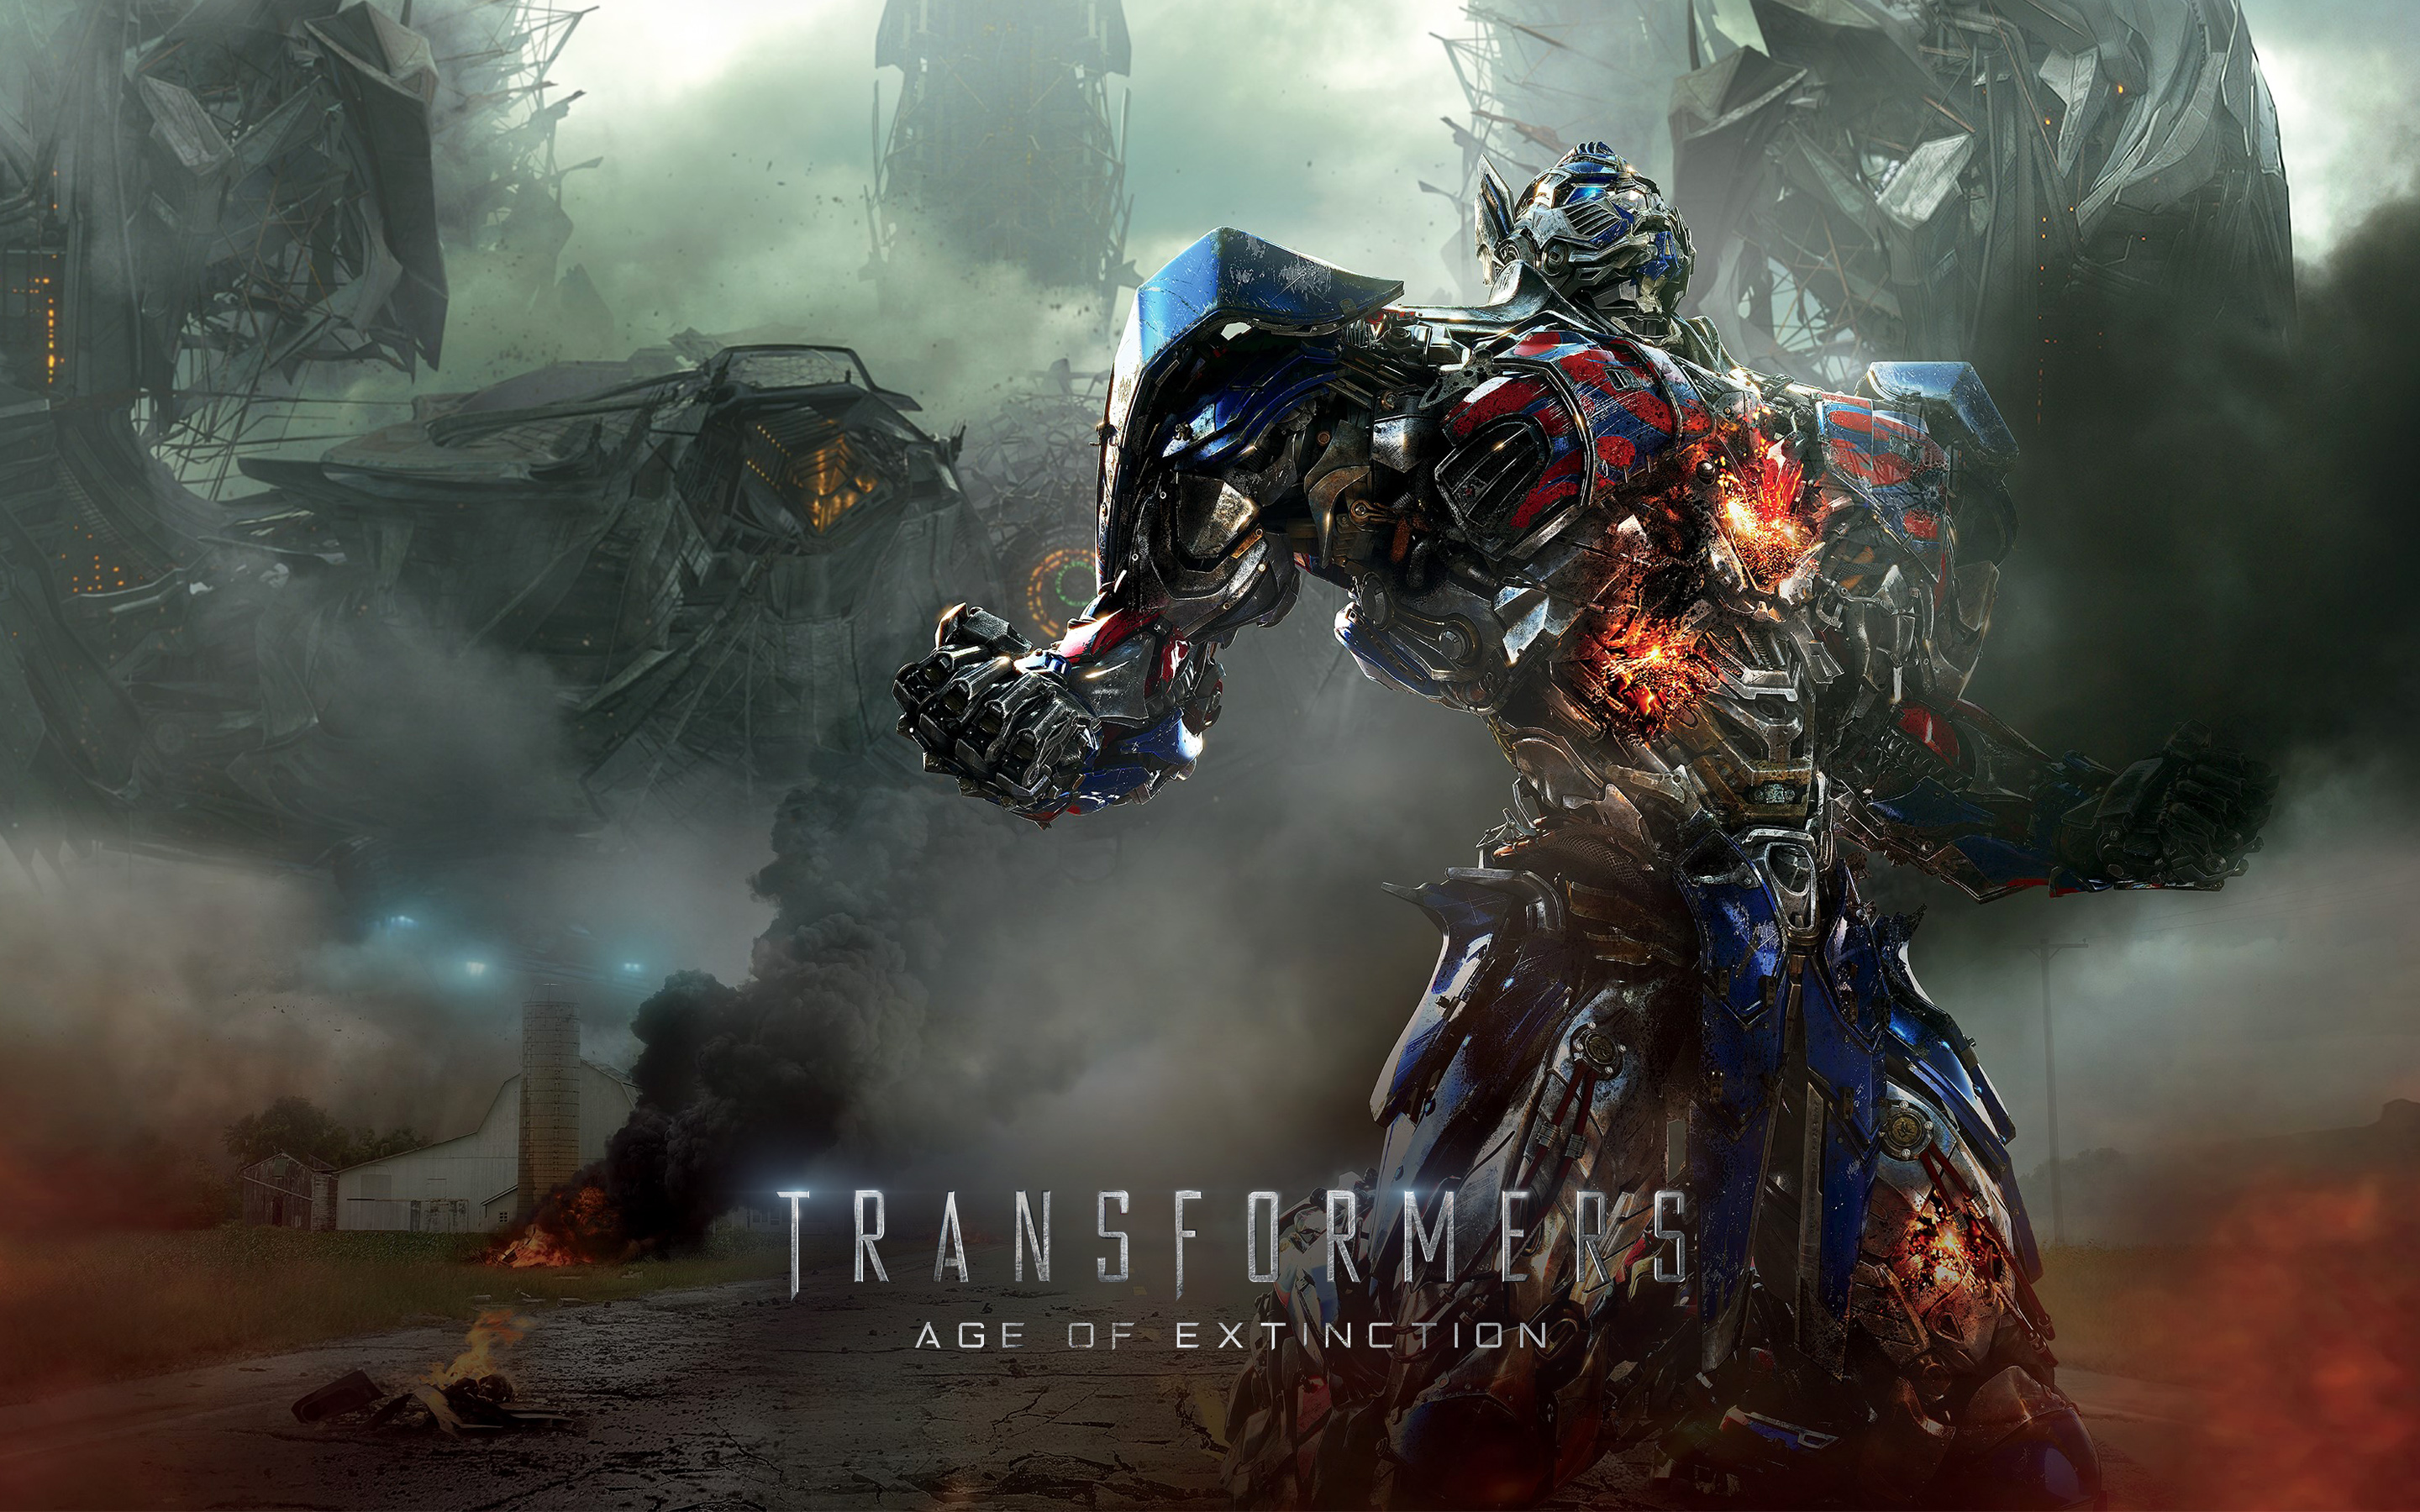 Transformers age of extinction photos DRESS XY8880-Red XY8880-Red Tas Import Murah Batam Grosir